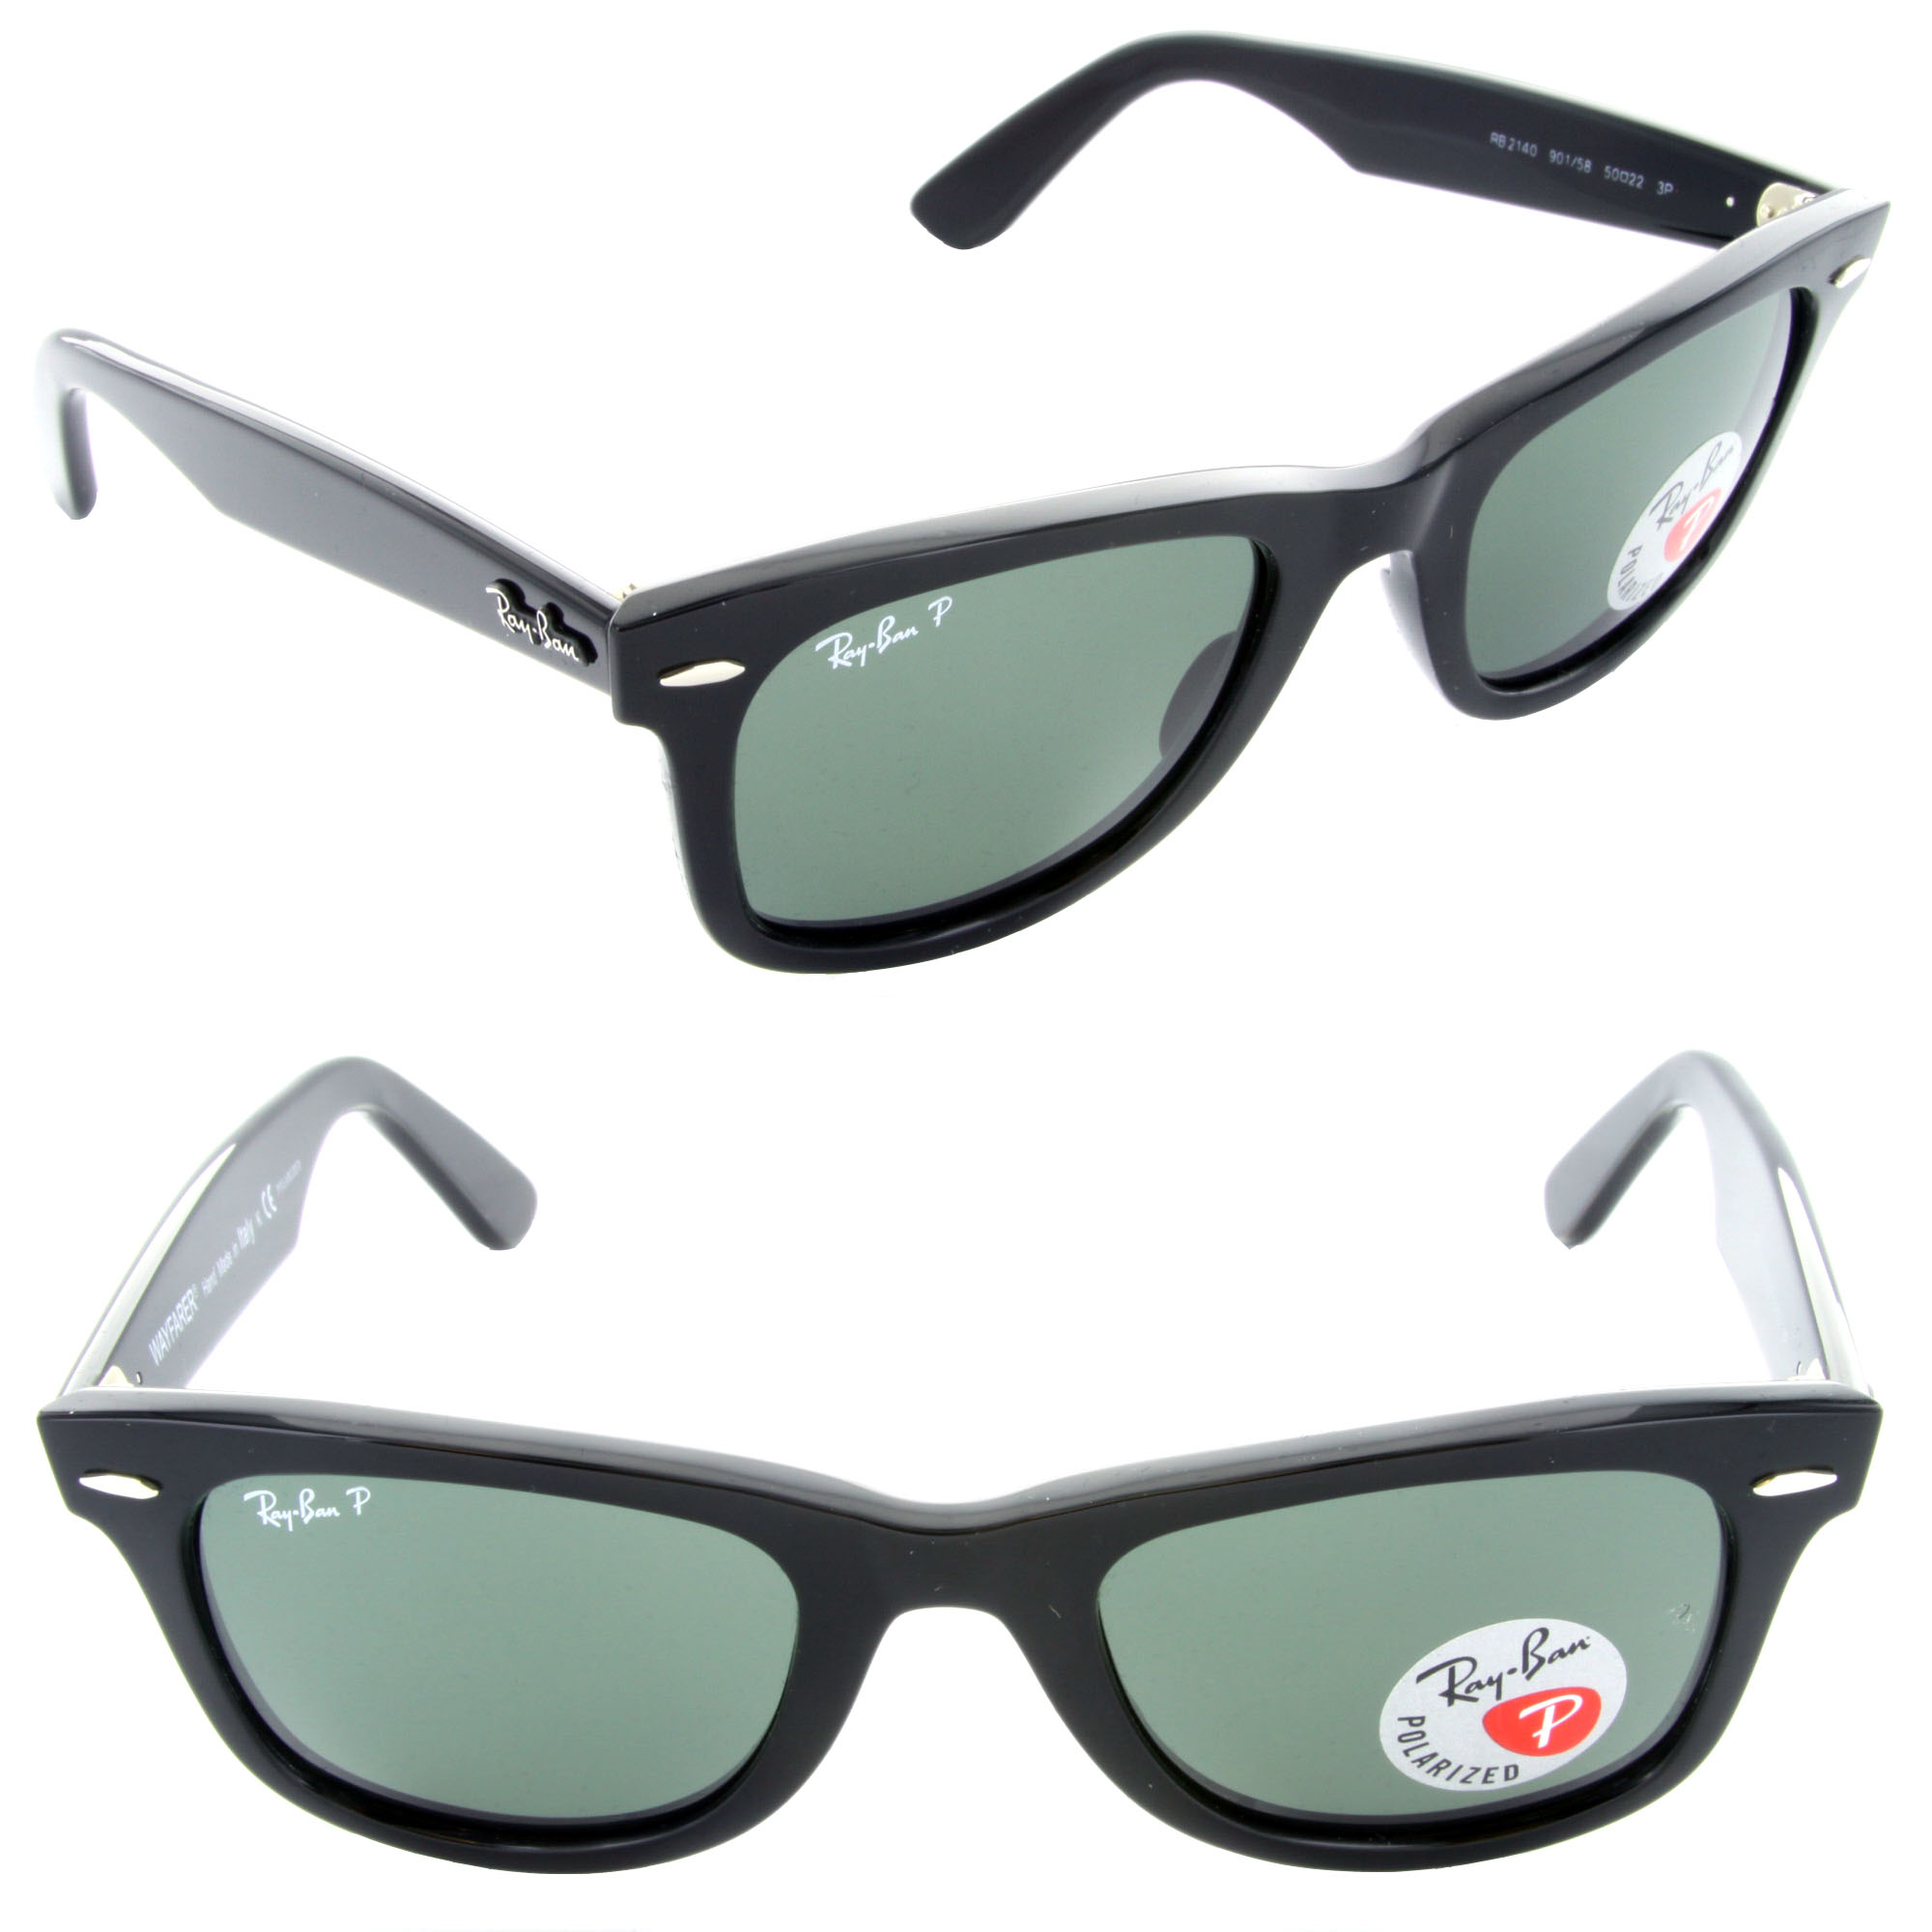 ray ban 2113  ray ban rb2132 new wayfarer 901/58 喔`覆喔勦覆